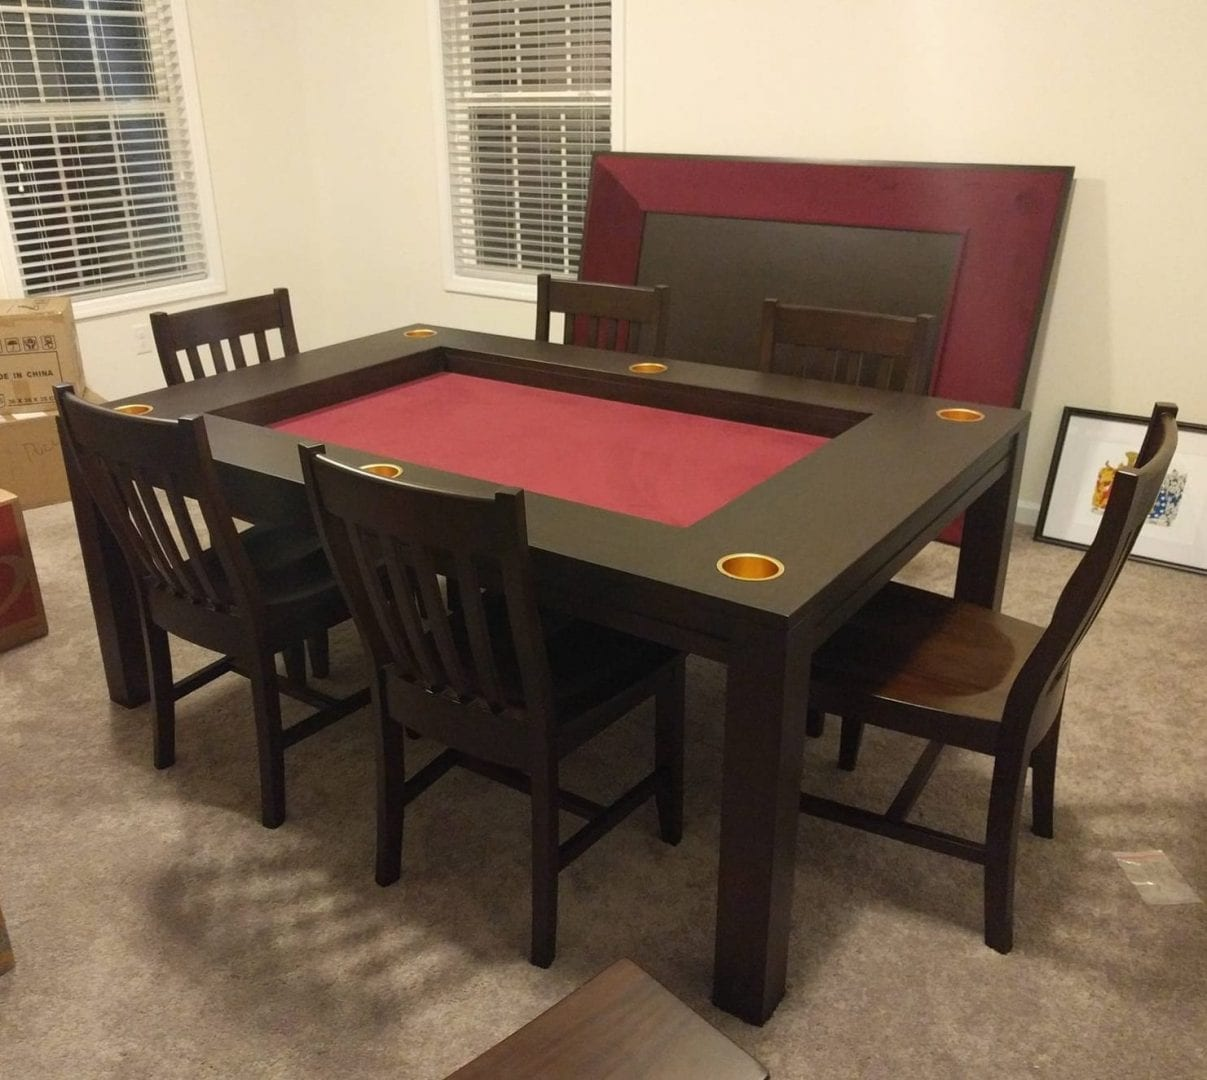 Dining Room Game Table Of Dining Game Table One Table For Everyday Dining And Game